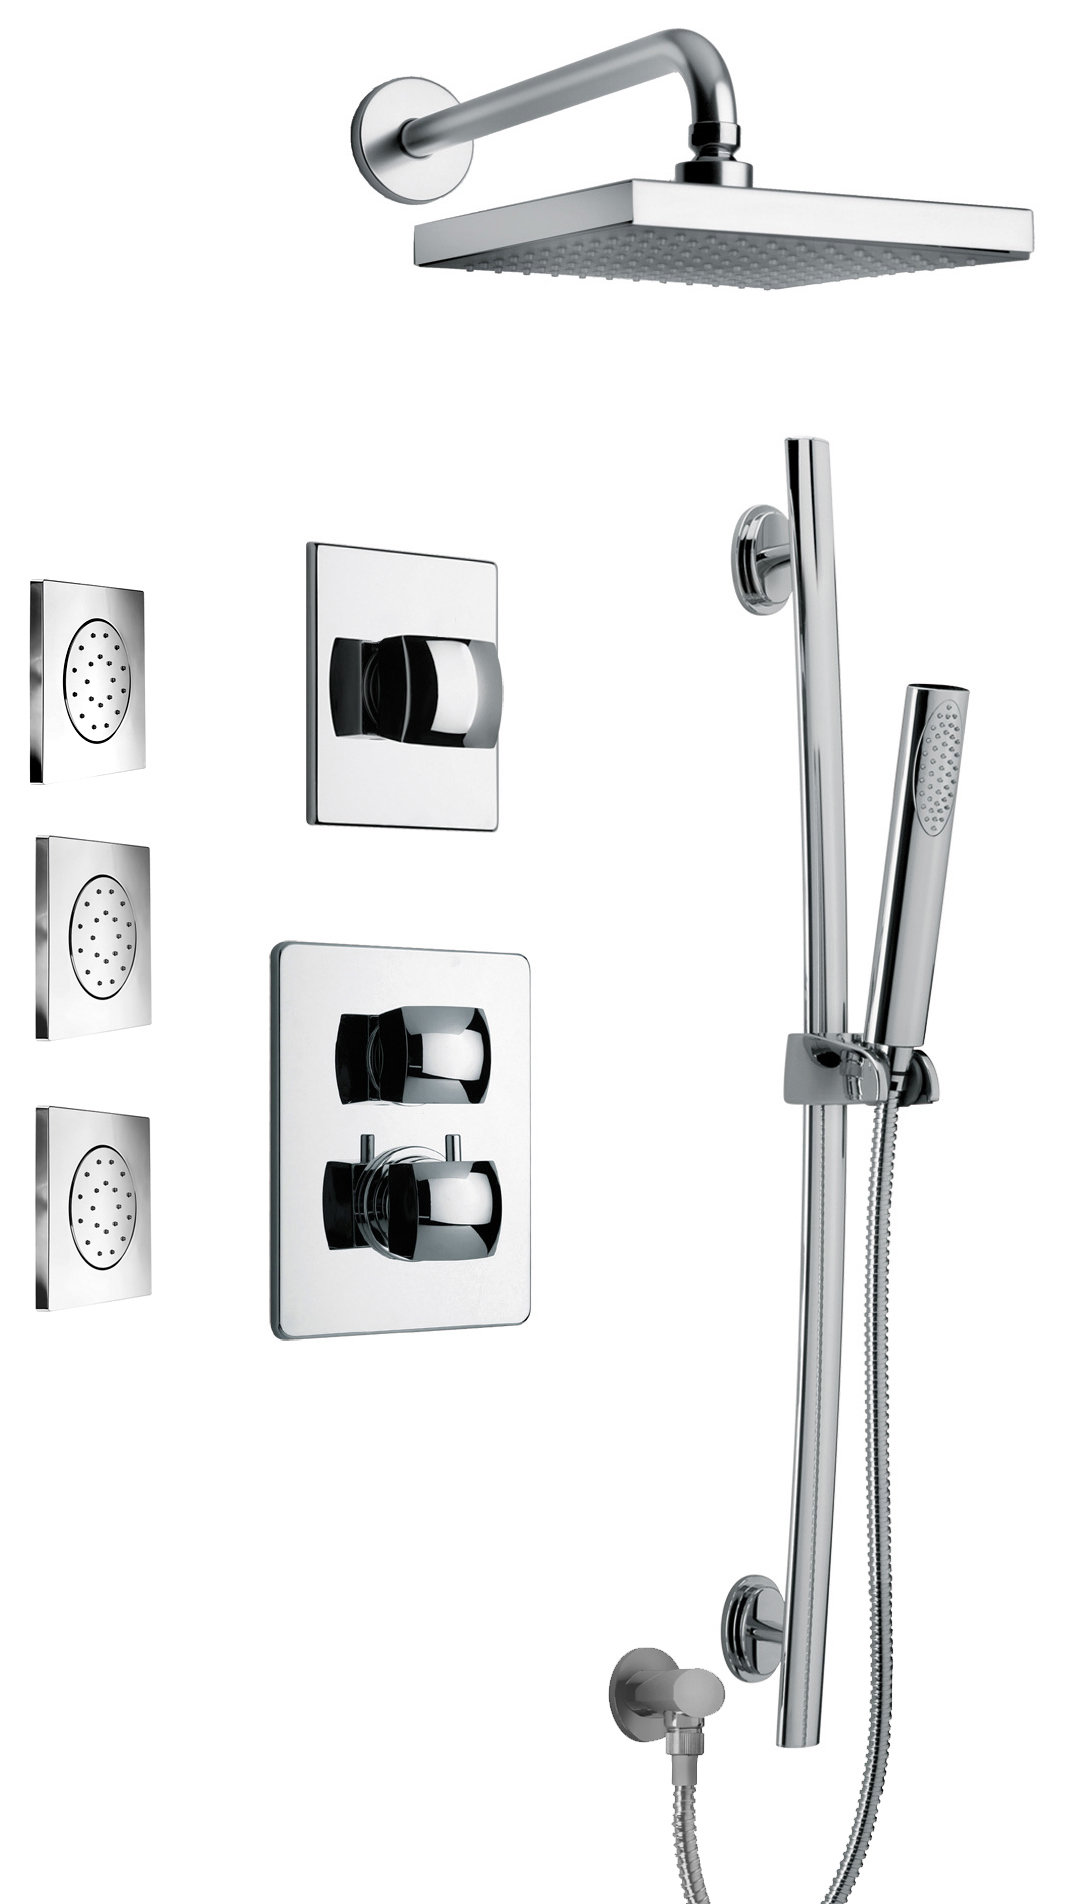 "Thermostatic Shower With 3/4"" Ceramic Disc Volume Control, 3-Way Diverter, Slide Bar, 3 Concealed Body Jets - Chrome Finish"